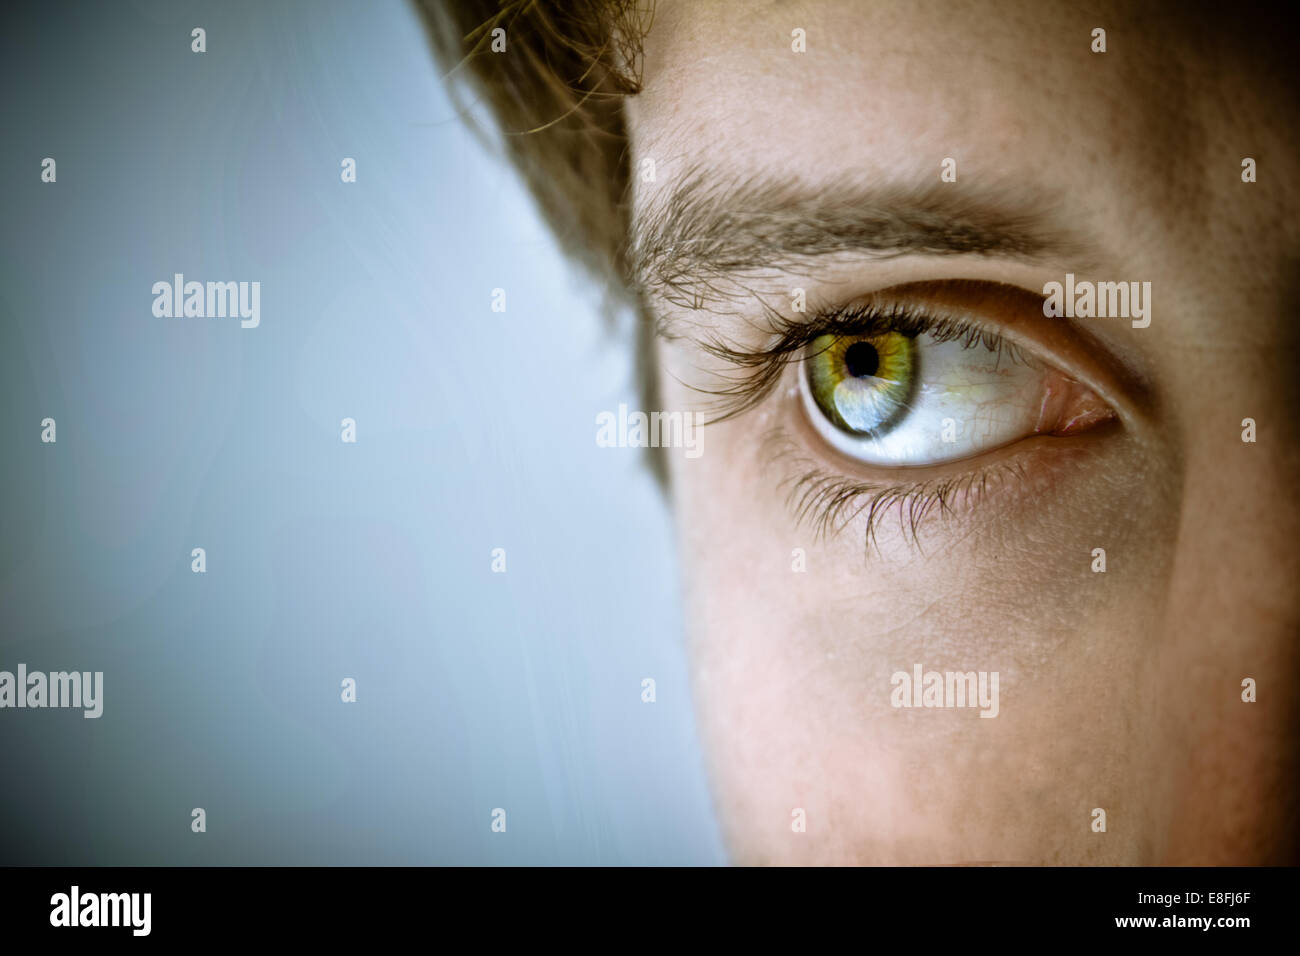 Close-up of man's eye - Stock Image